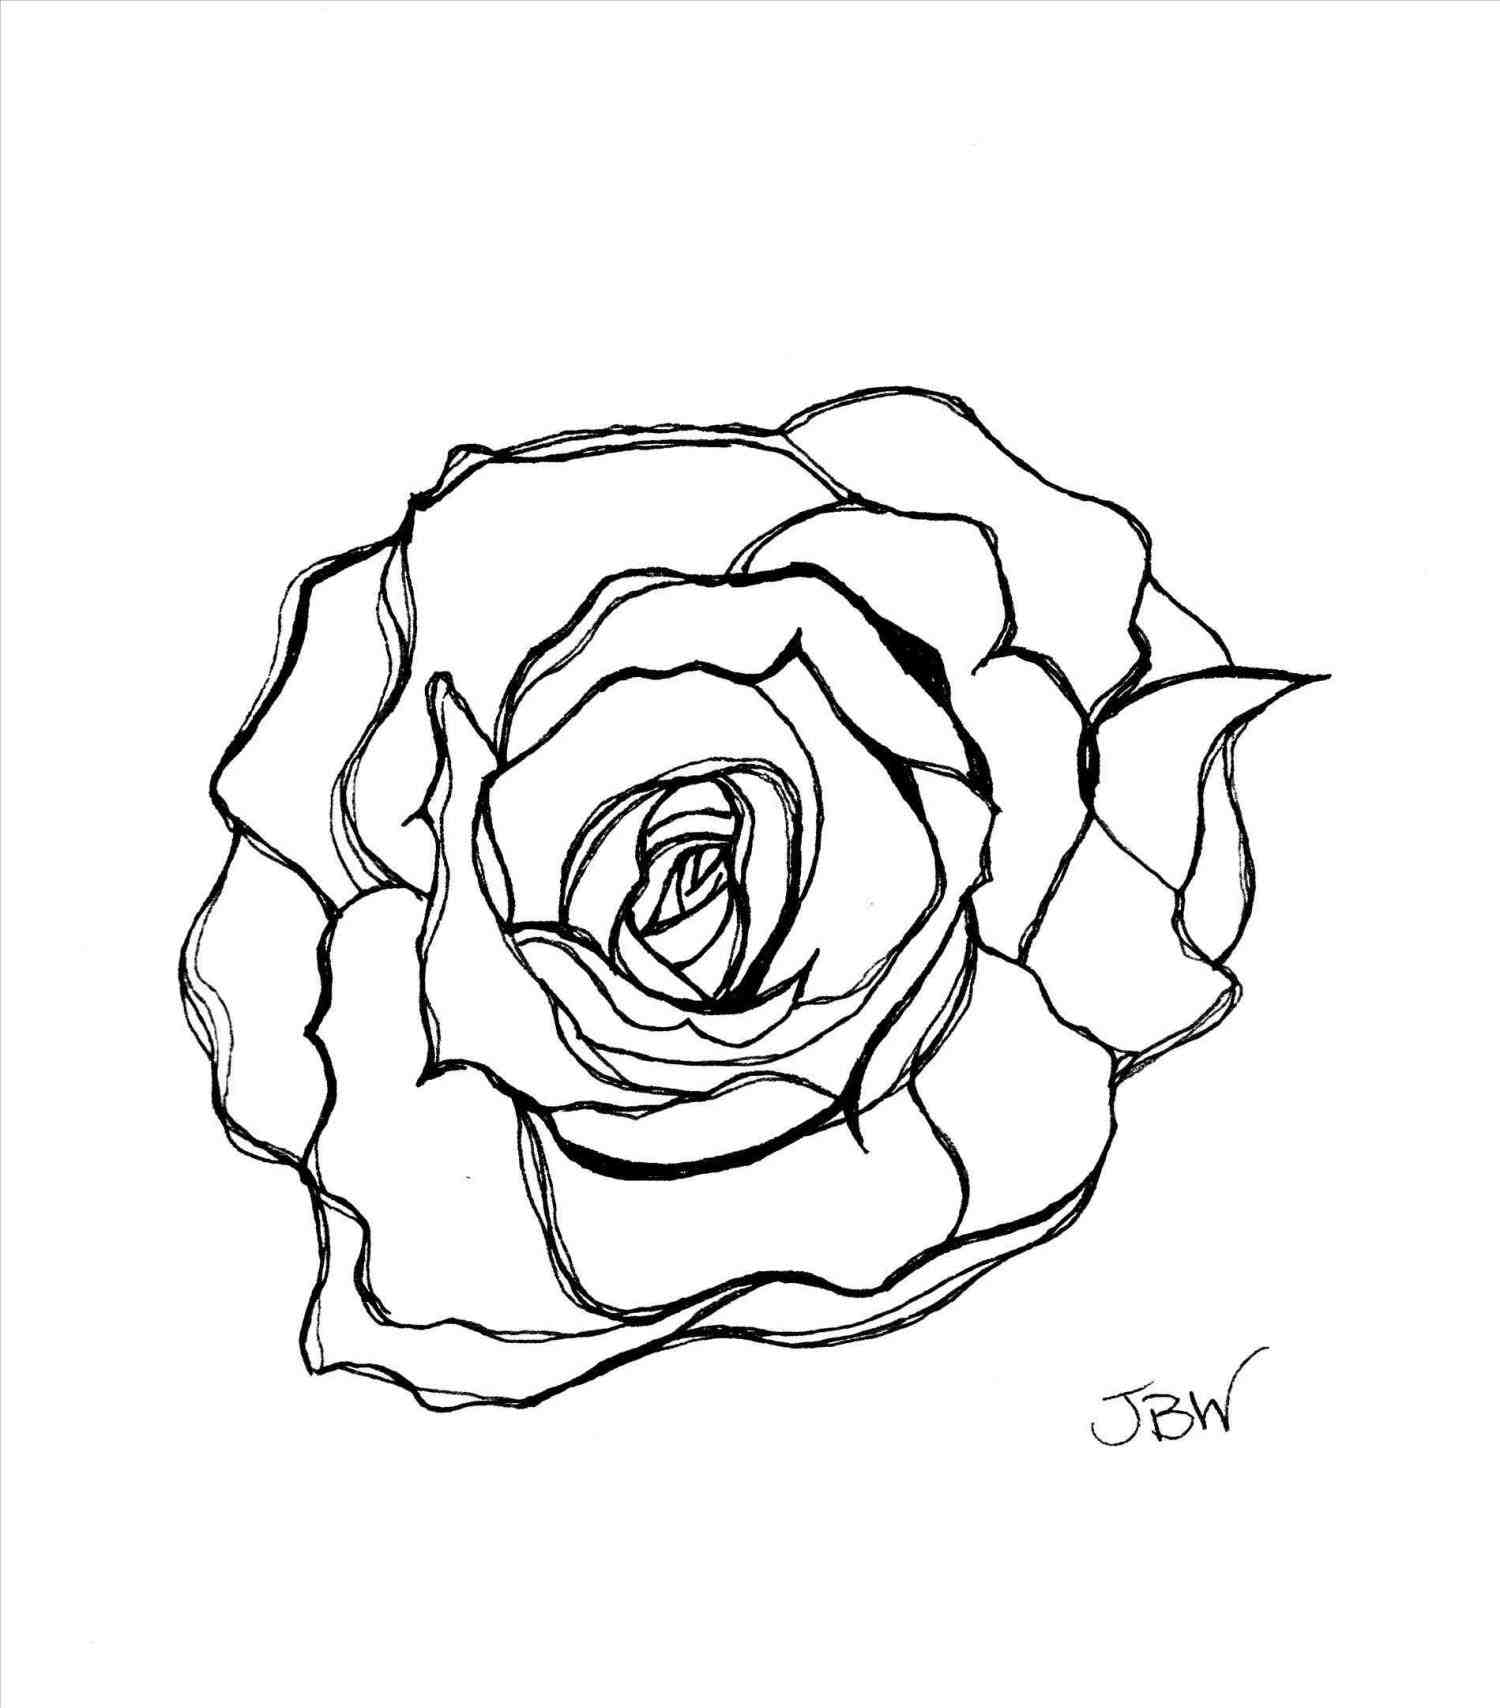 1500x1708 Tattoo Drawings Of Roses With Banners